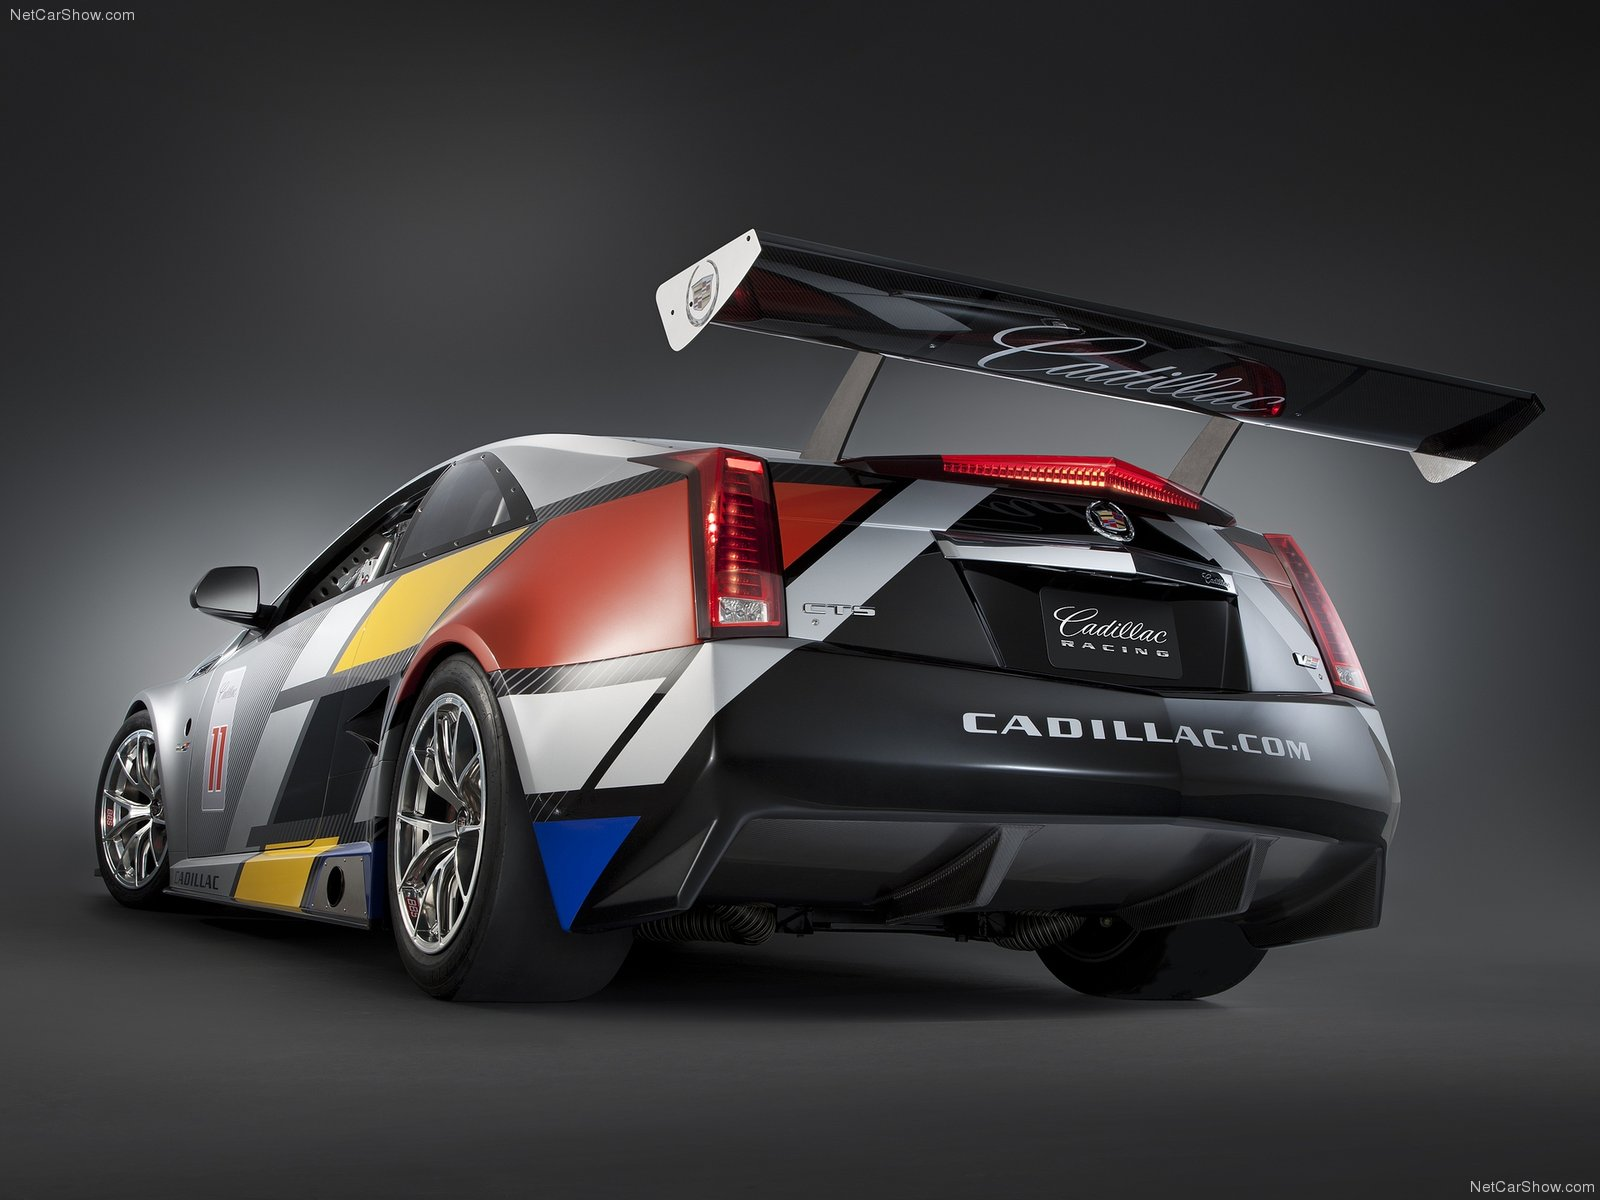 Cadillac CTS-V Coupe Race Car photo 77653